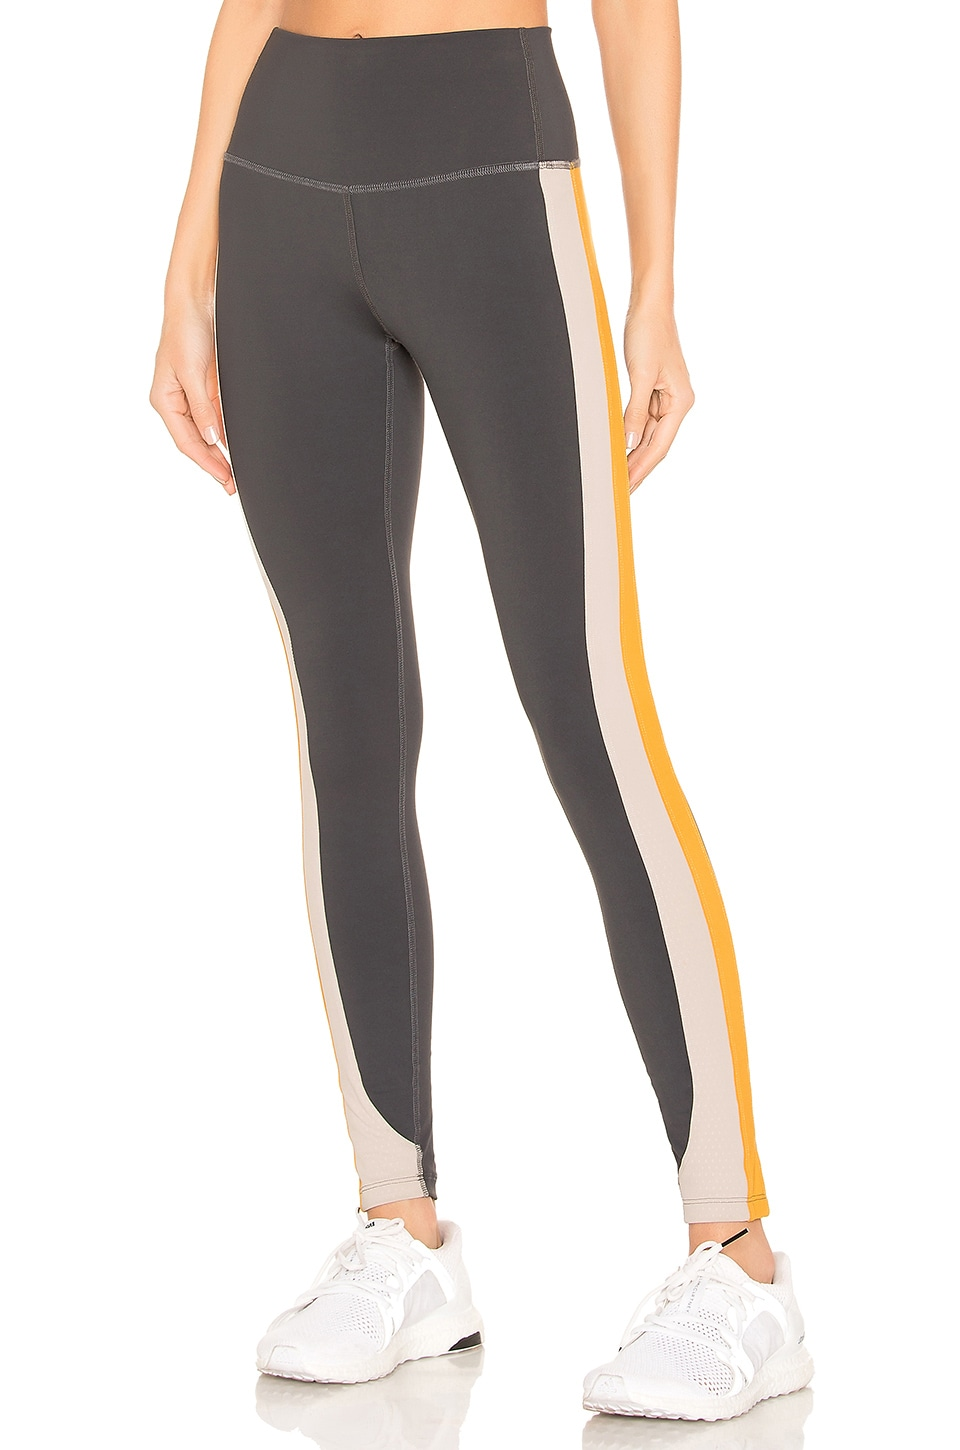 Splits59 Freestyle High Waist Tight in Charcoal, Stone & Orange